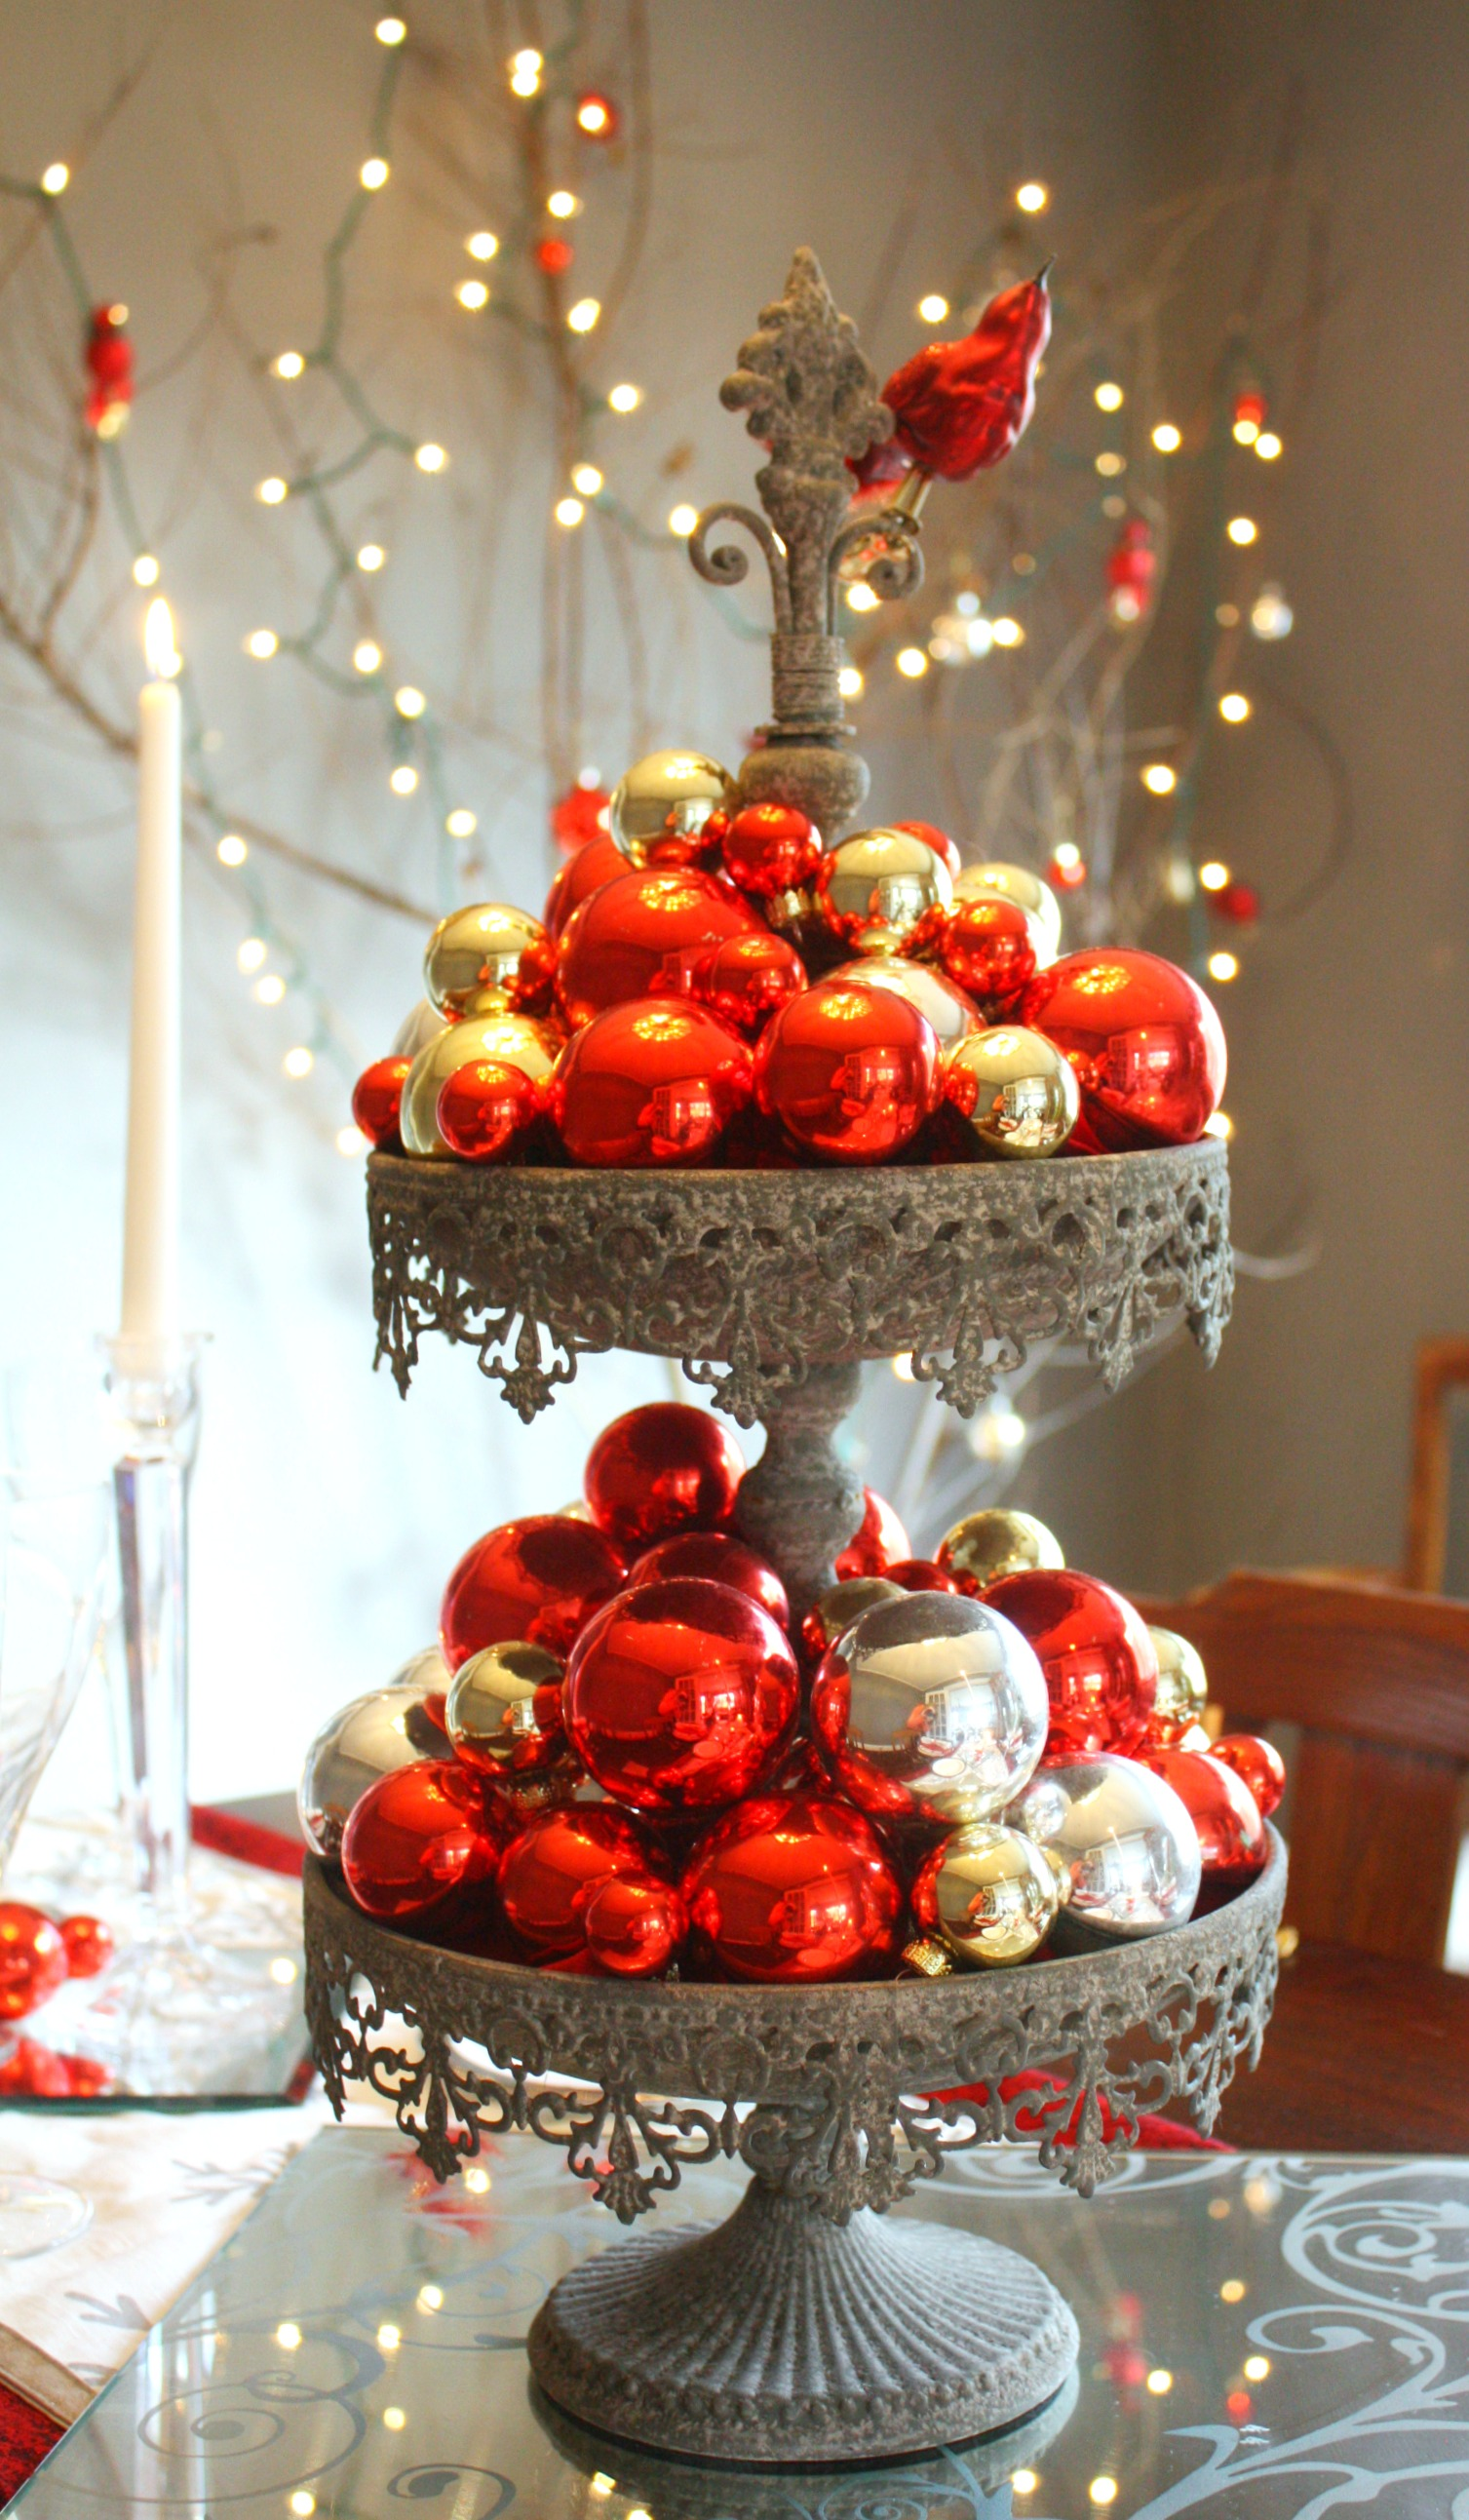 Amusing Christmas Table Arrangements With Red Fruits And Candys At ...